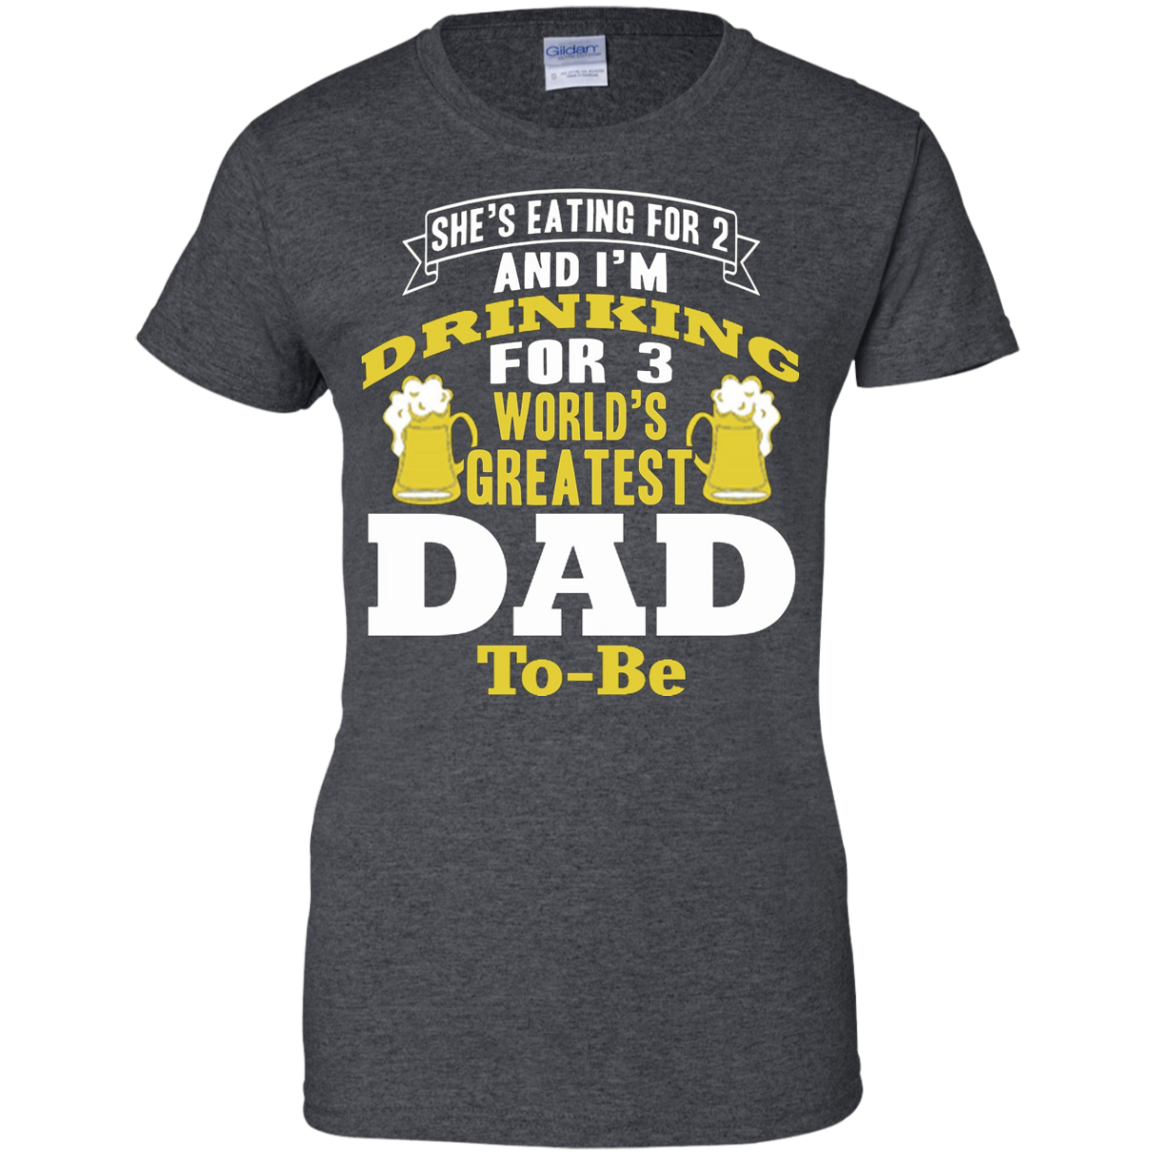 I'm drinking for 3 World's Greatest Dad to-be